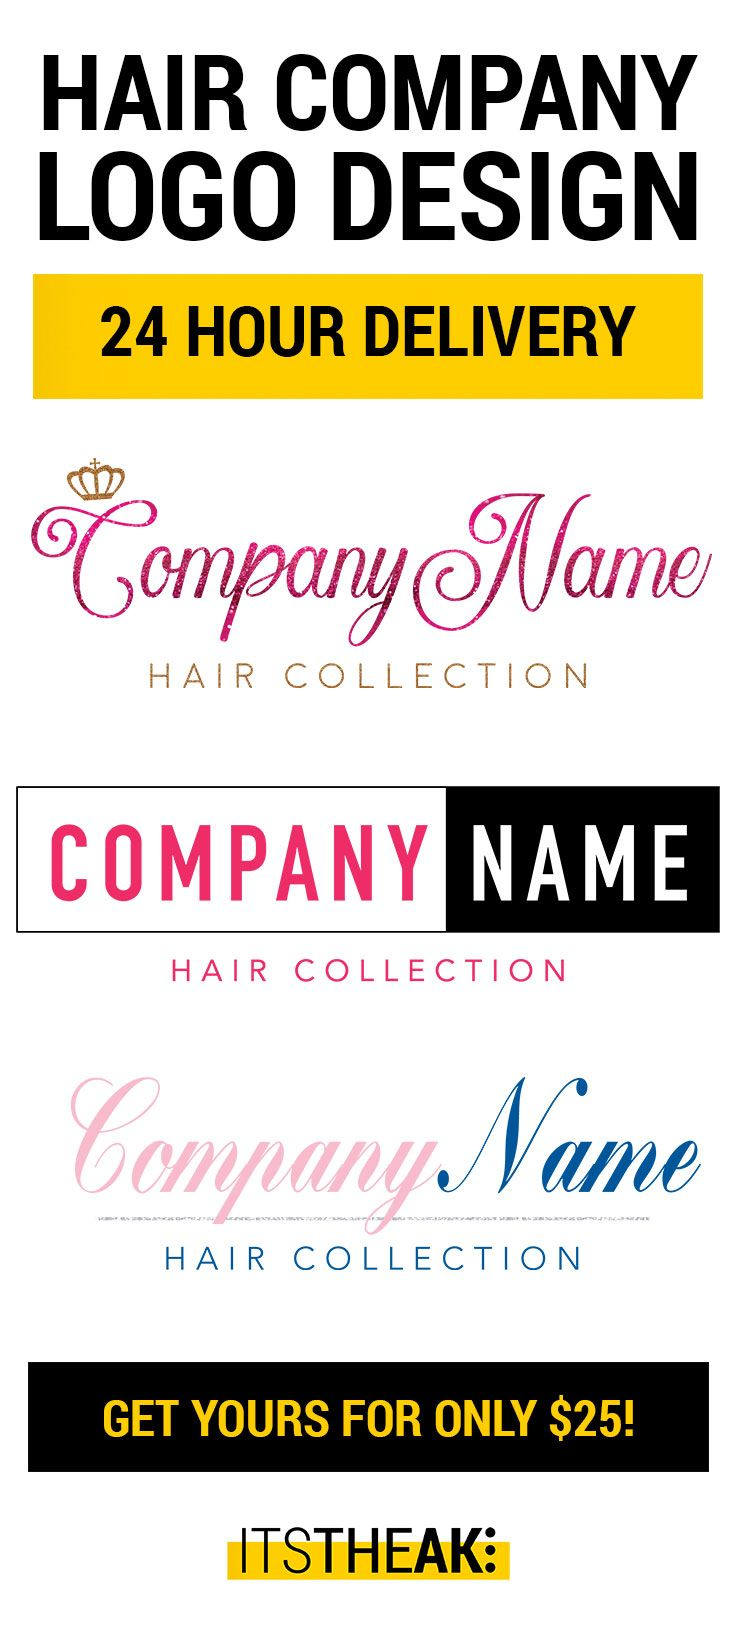 The 25 best hairdresser logo ideas on pinterest hair salon get your custom logo design for your hair extension business today for only 25 custom hair logo design hairdresser salon bundles branding hair pmusecretfo Image collections